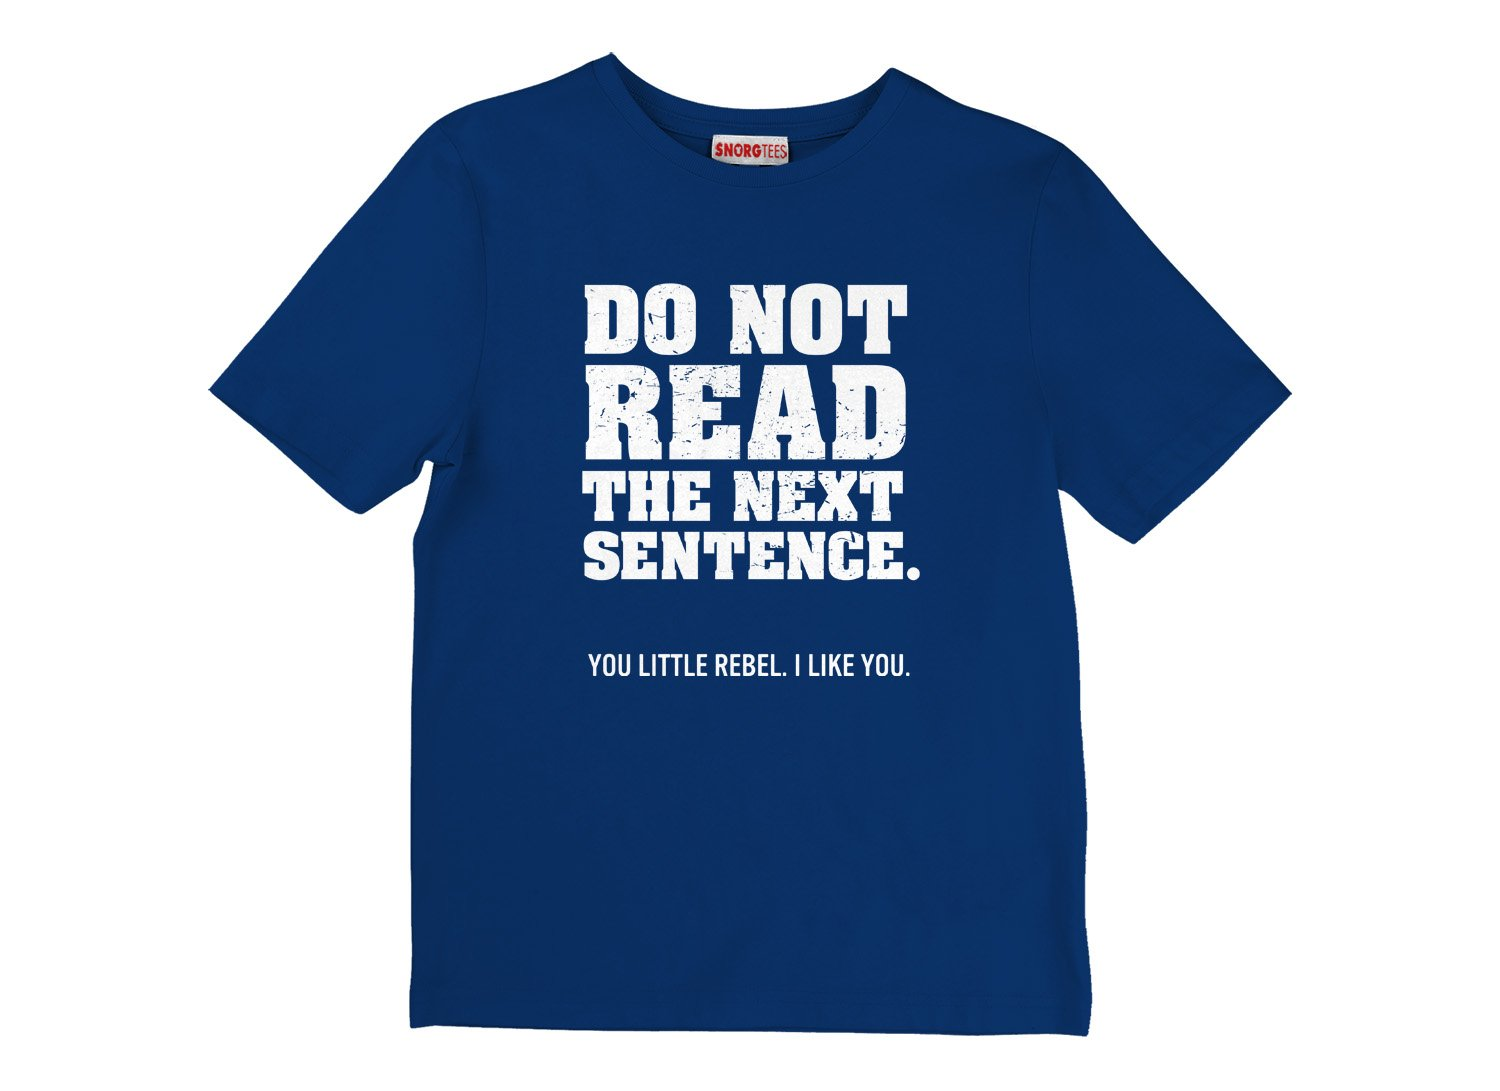 Do Not Read The Next Sentence. on Kids T-Shirt